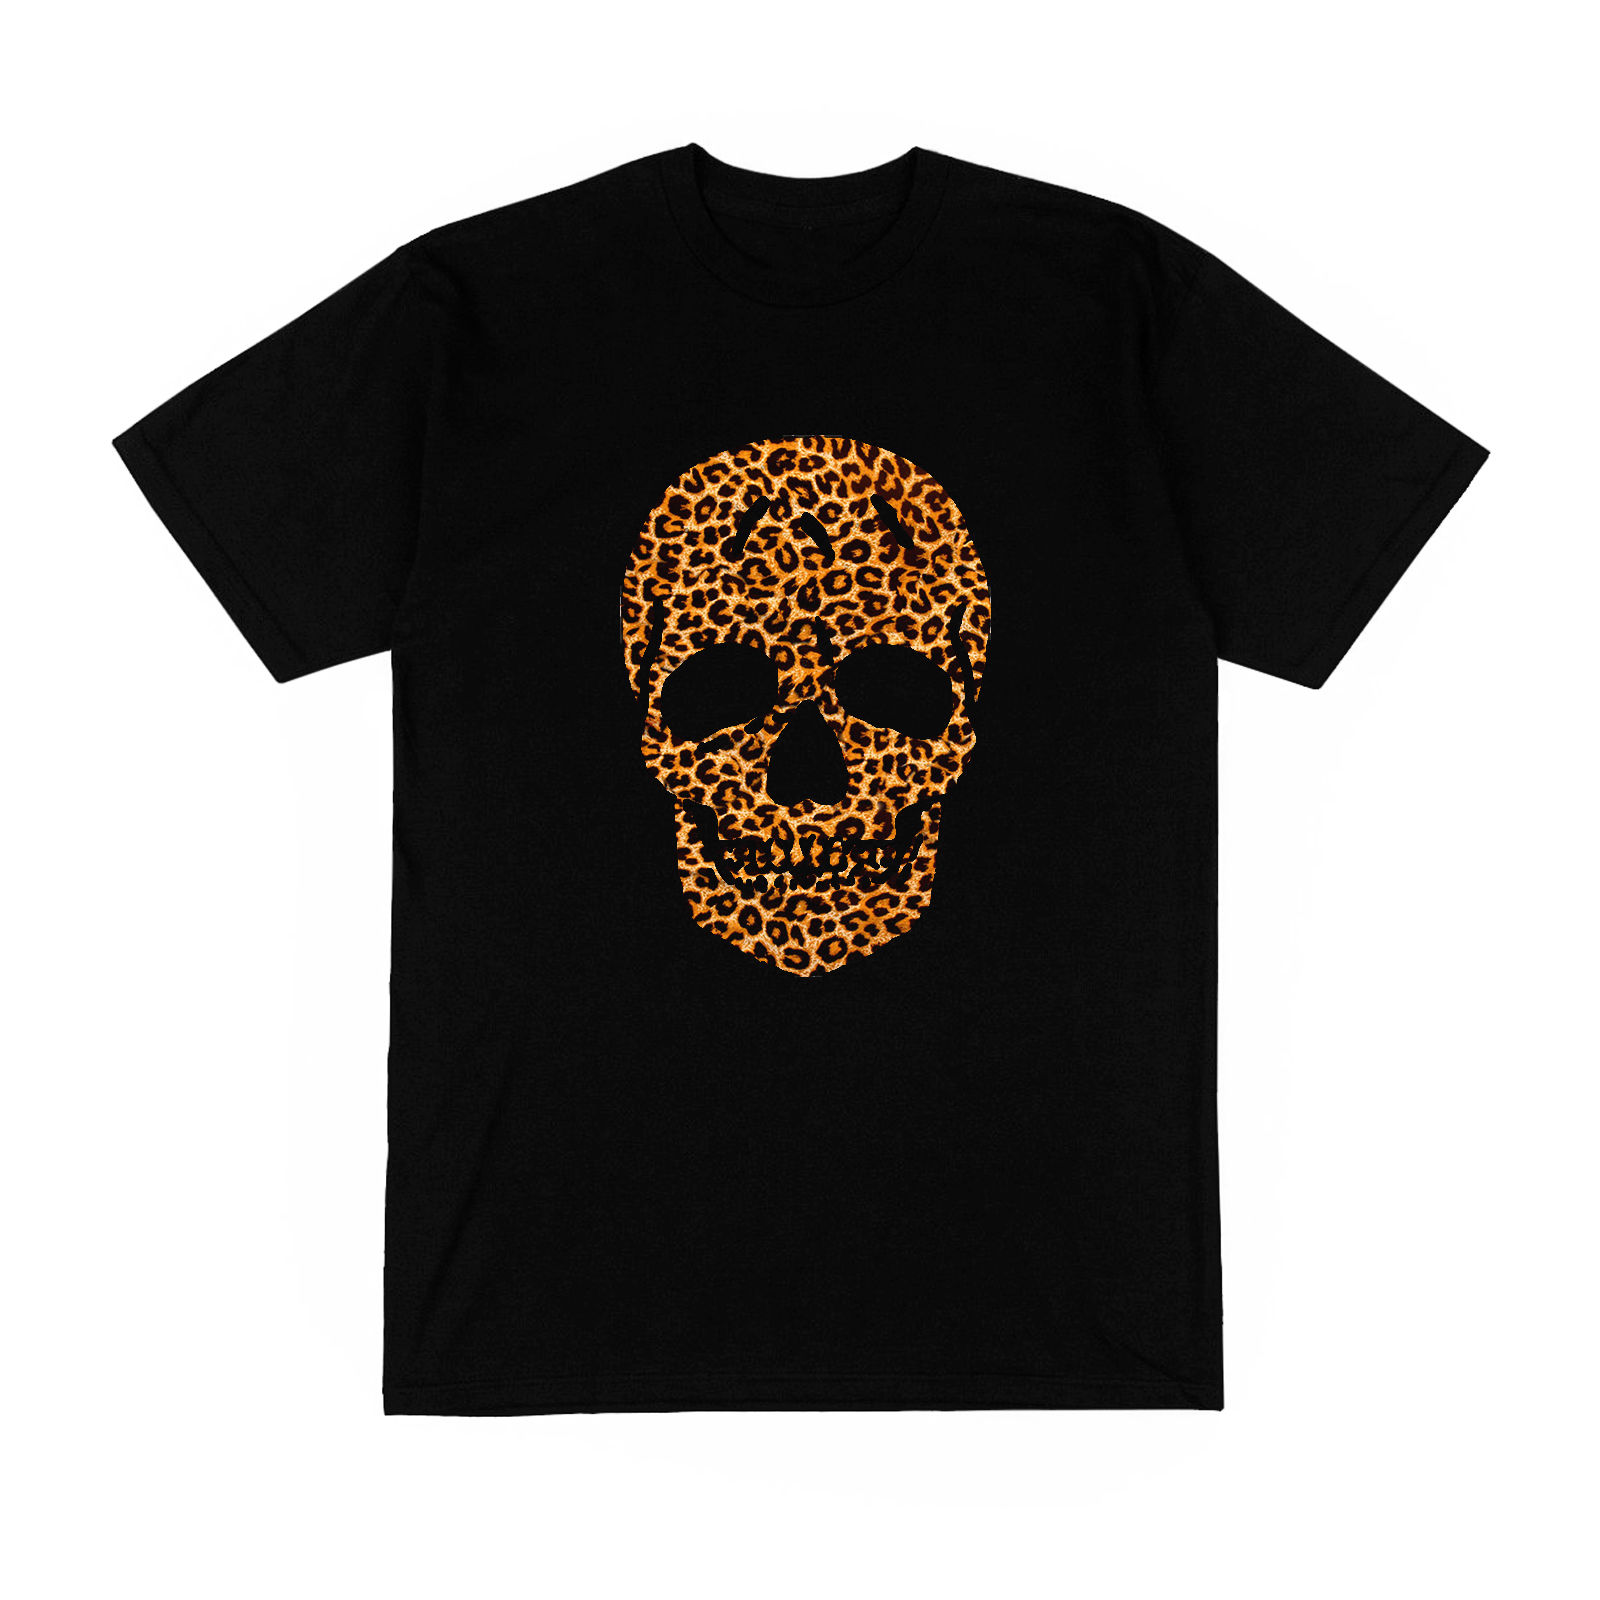 T-shirt Homme tete de mort crane humain leopard panthere luxe mode france paris